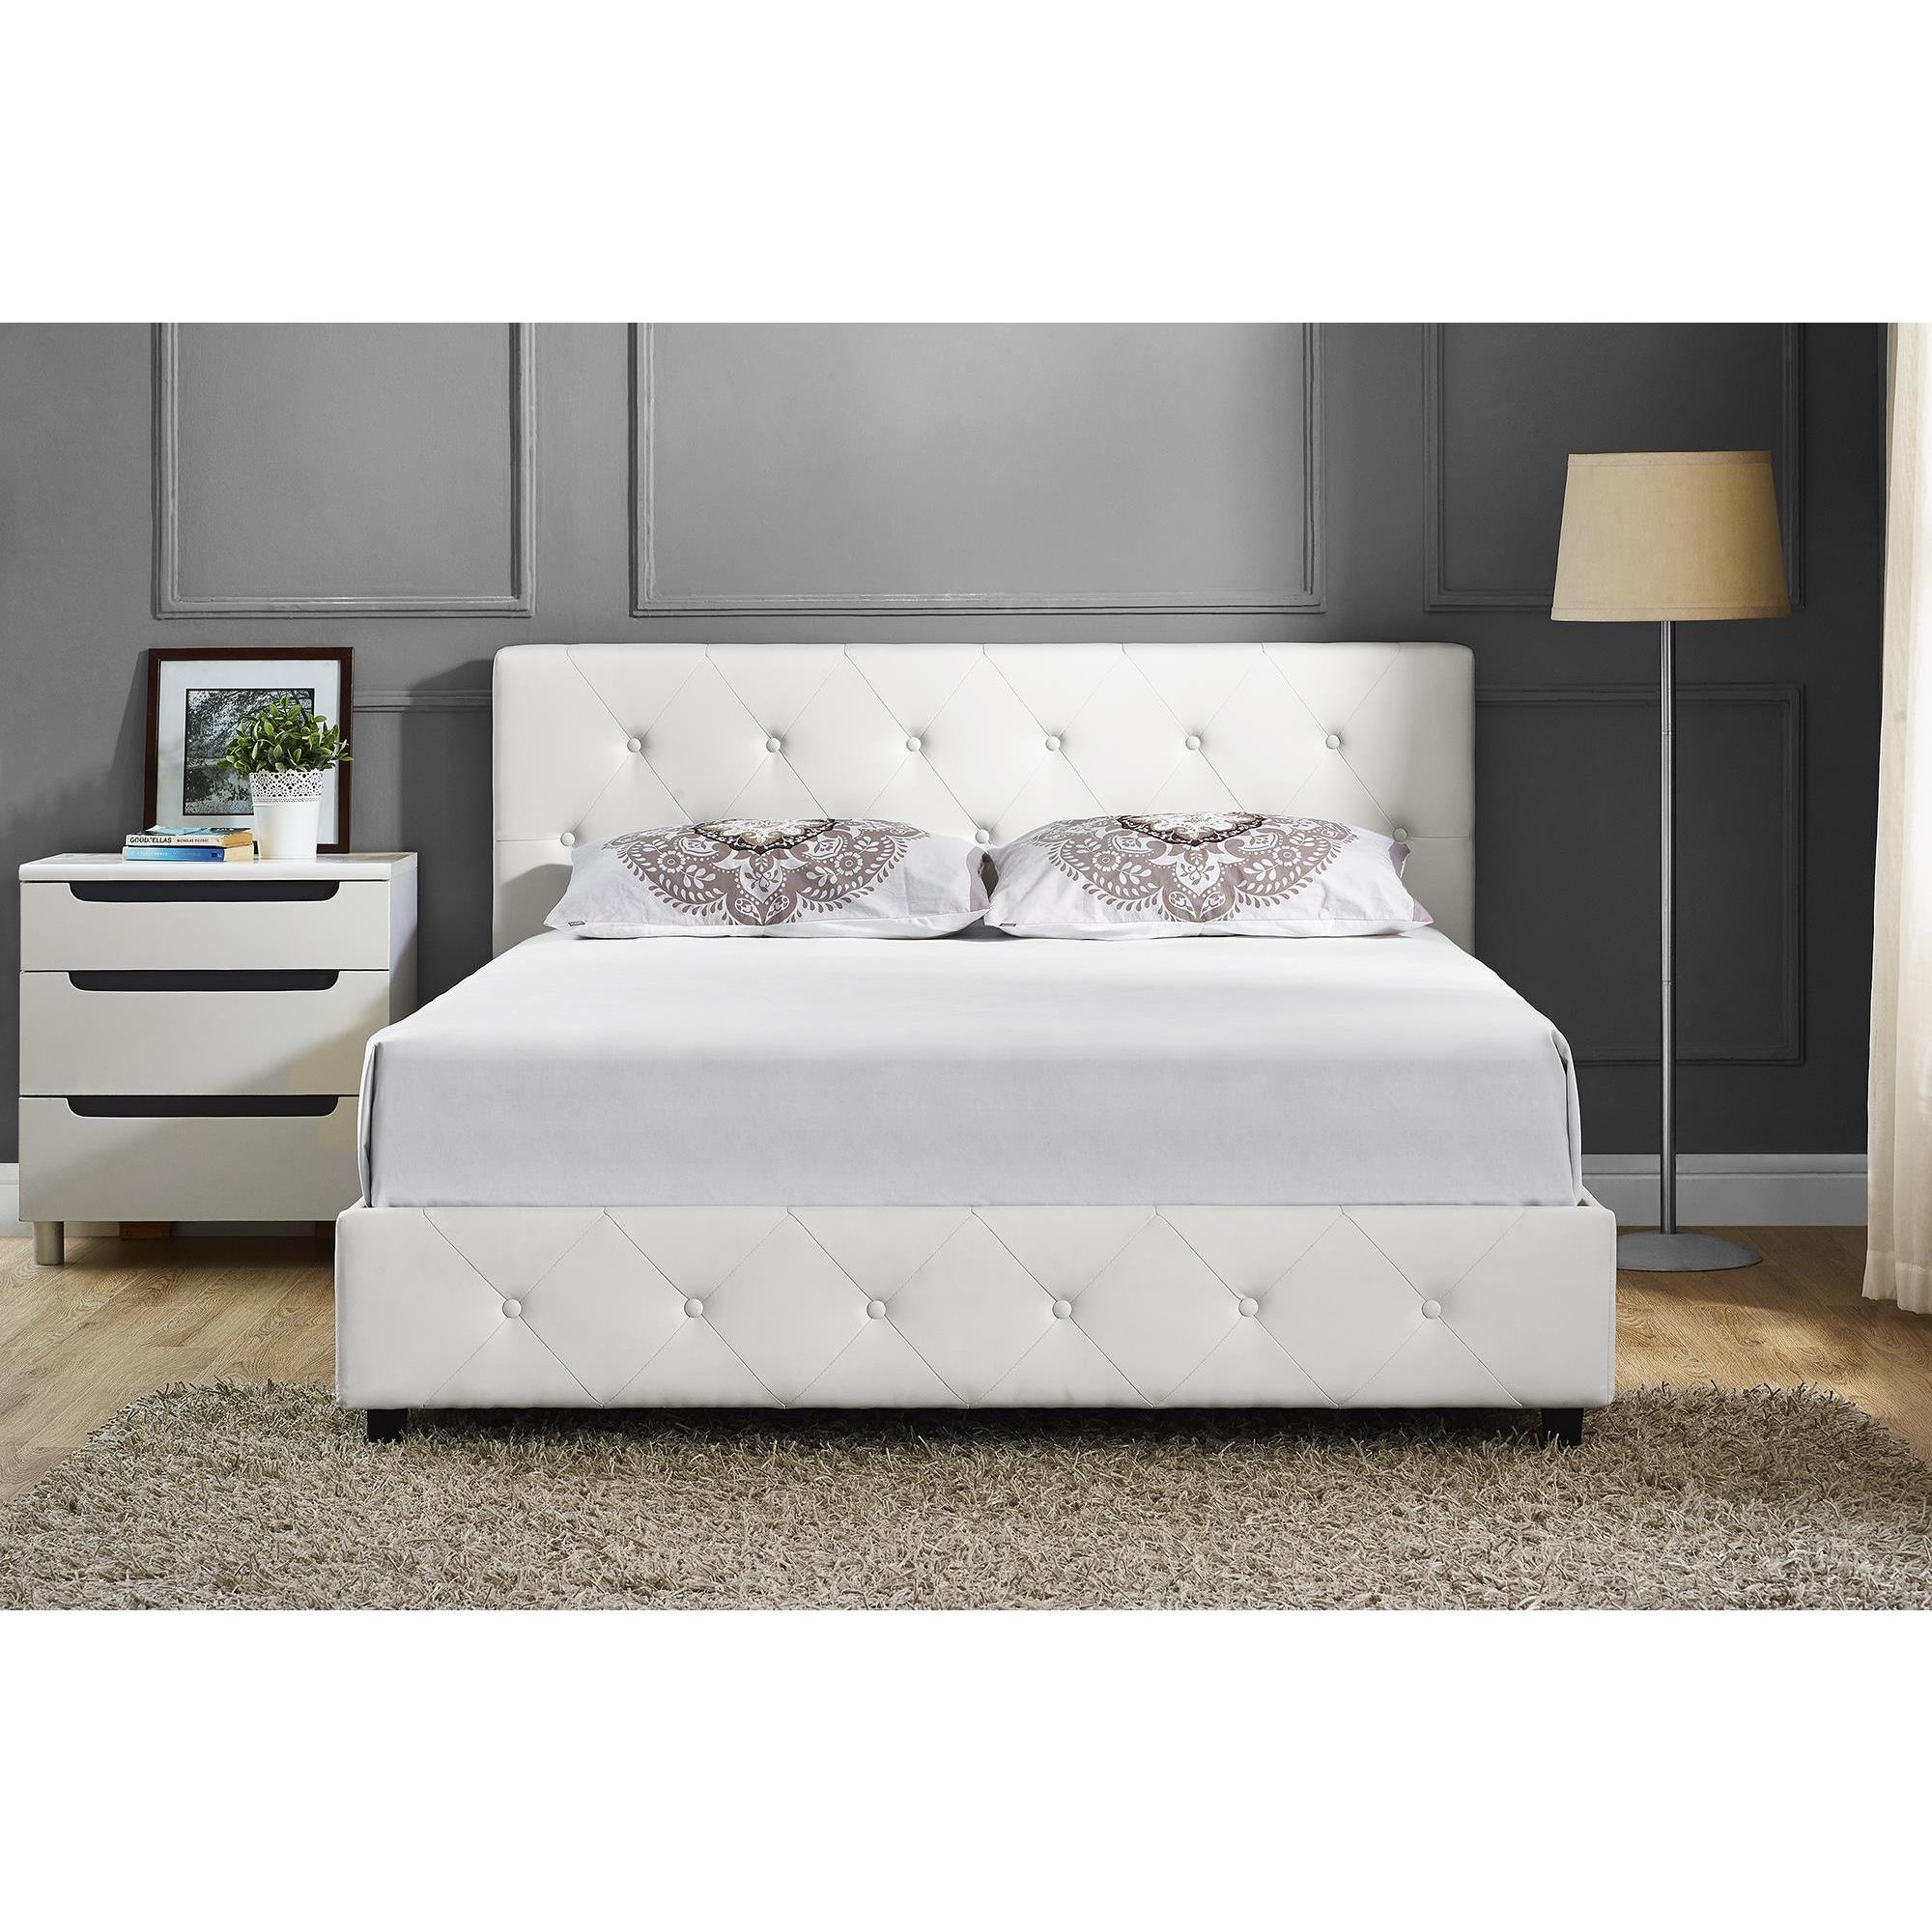 Oliver James Elsie White Faux Leather Full Size Bed